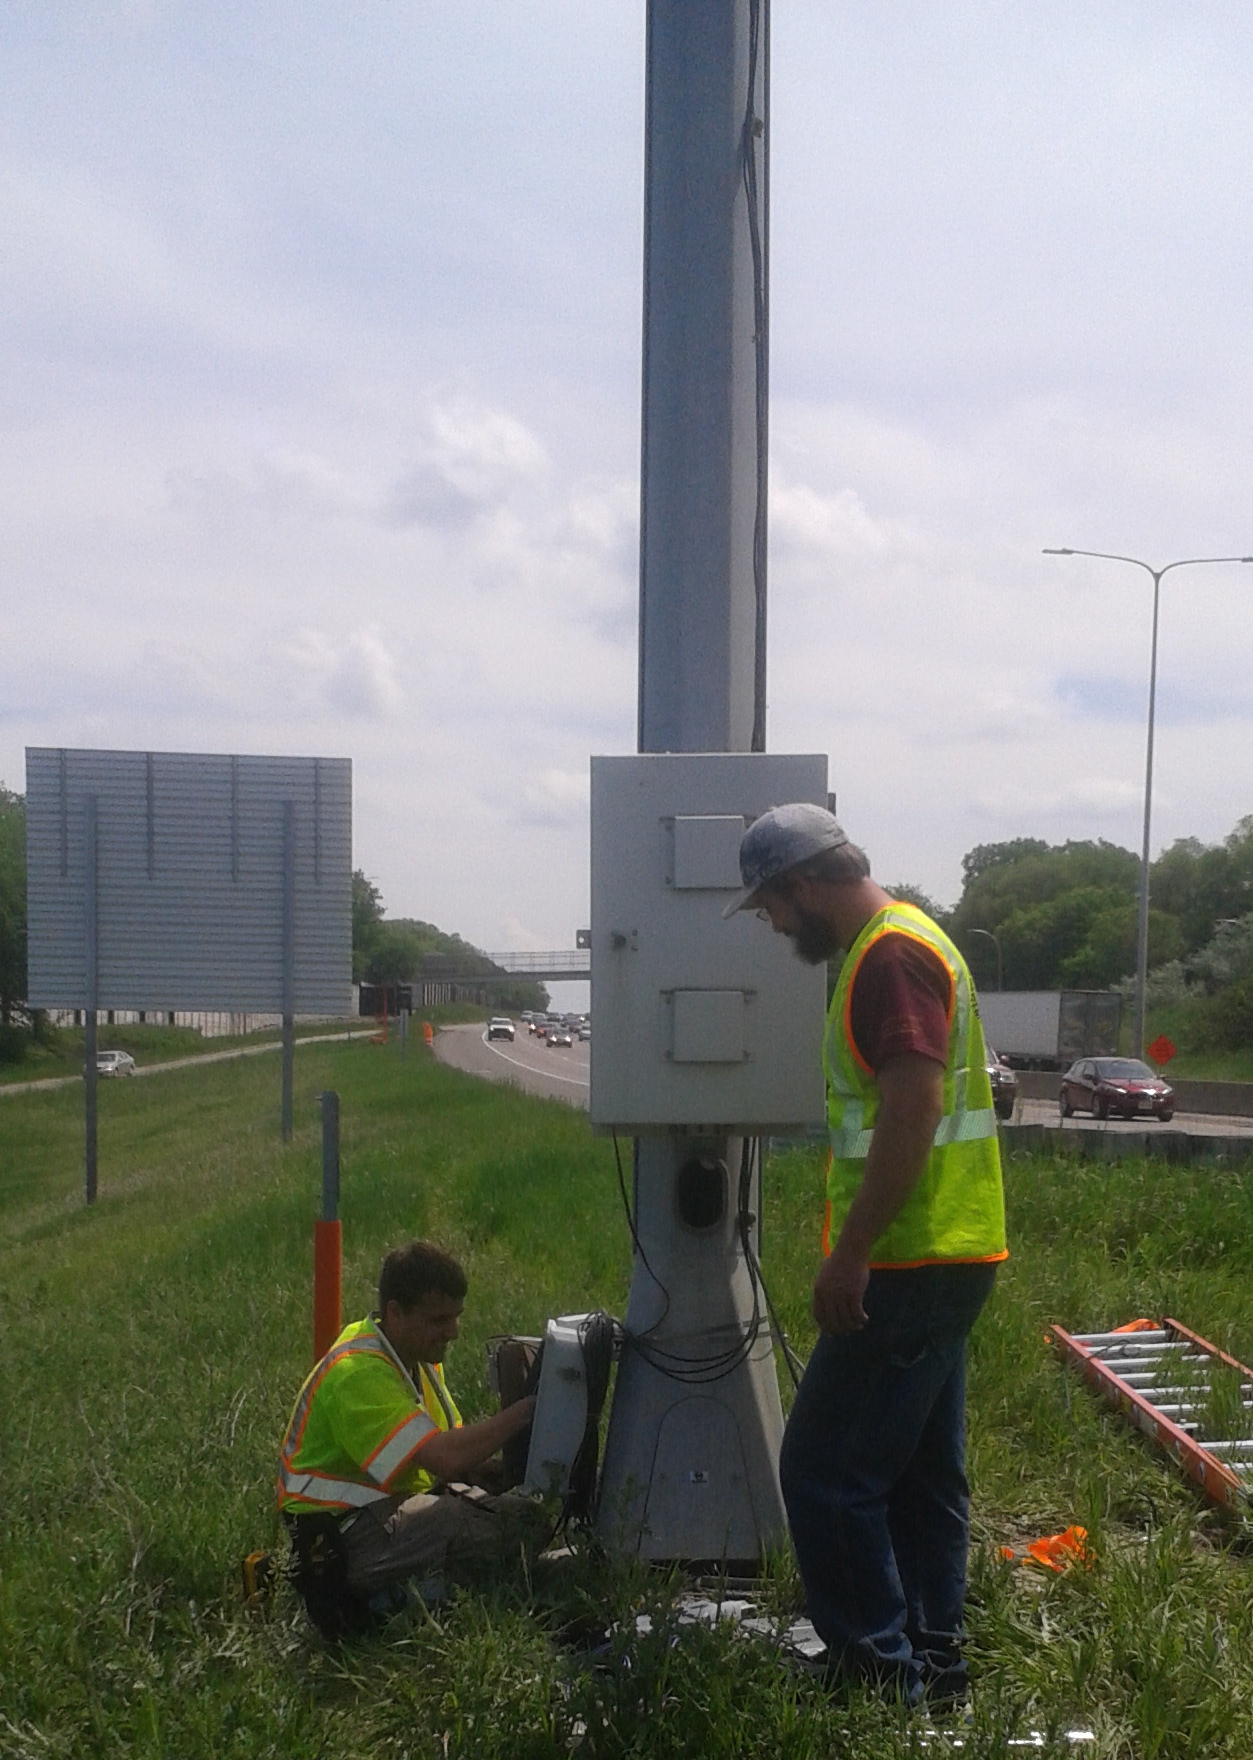 Speed detection sensors were installed on poles every half-mile through a new highway construction work zone.